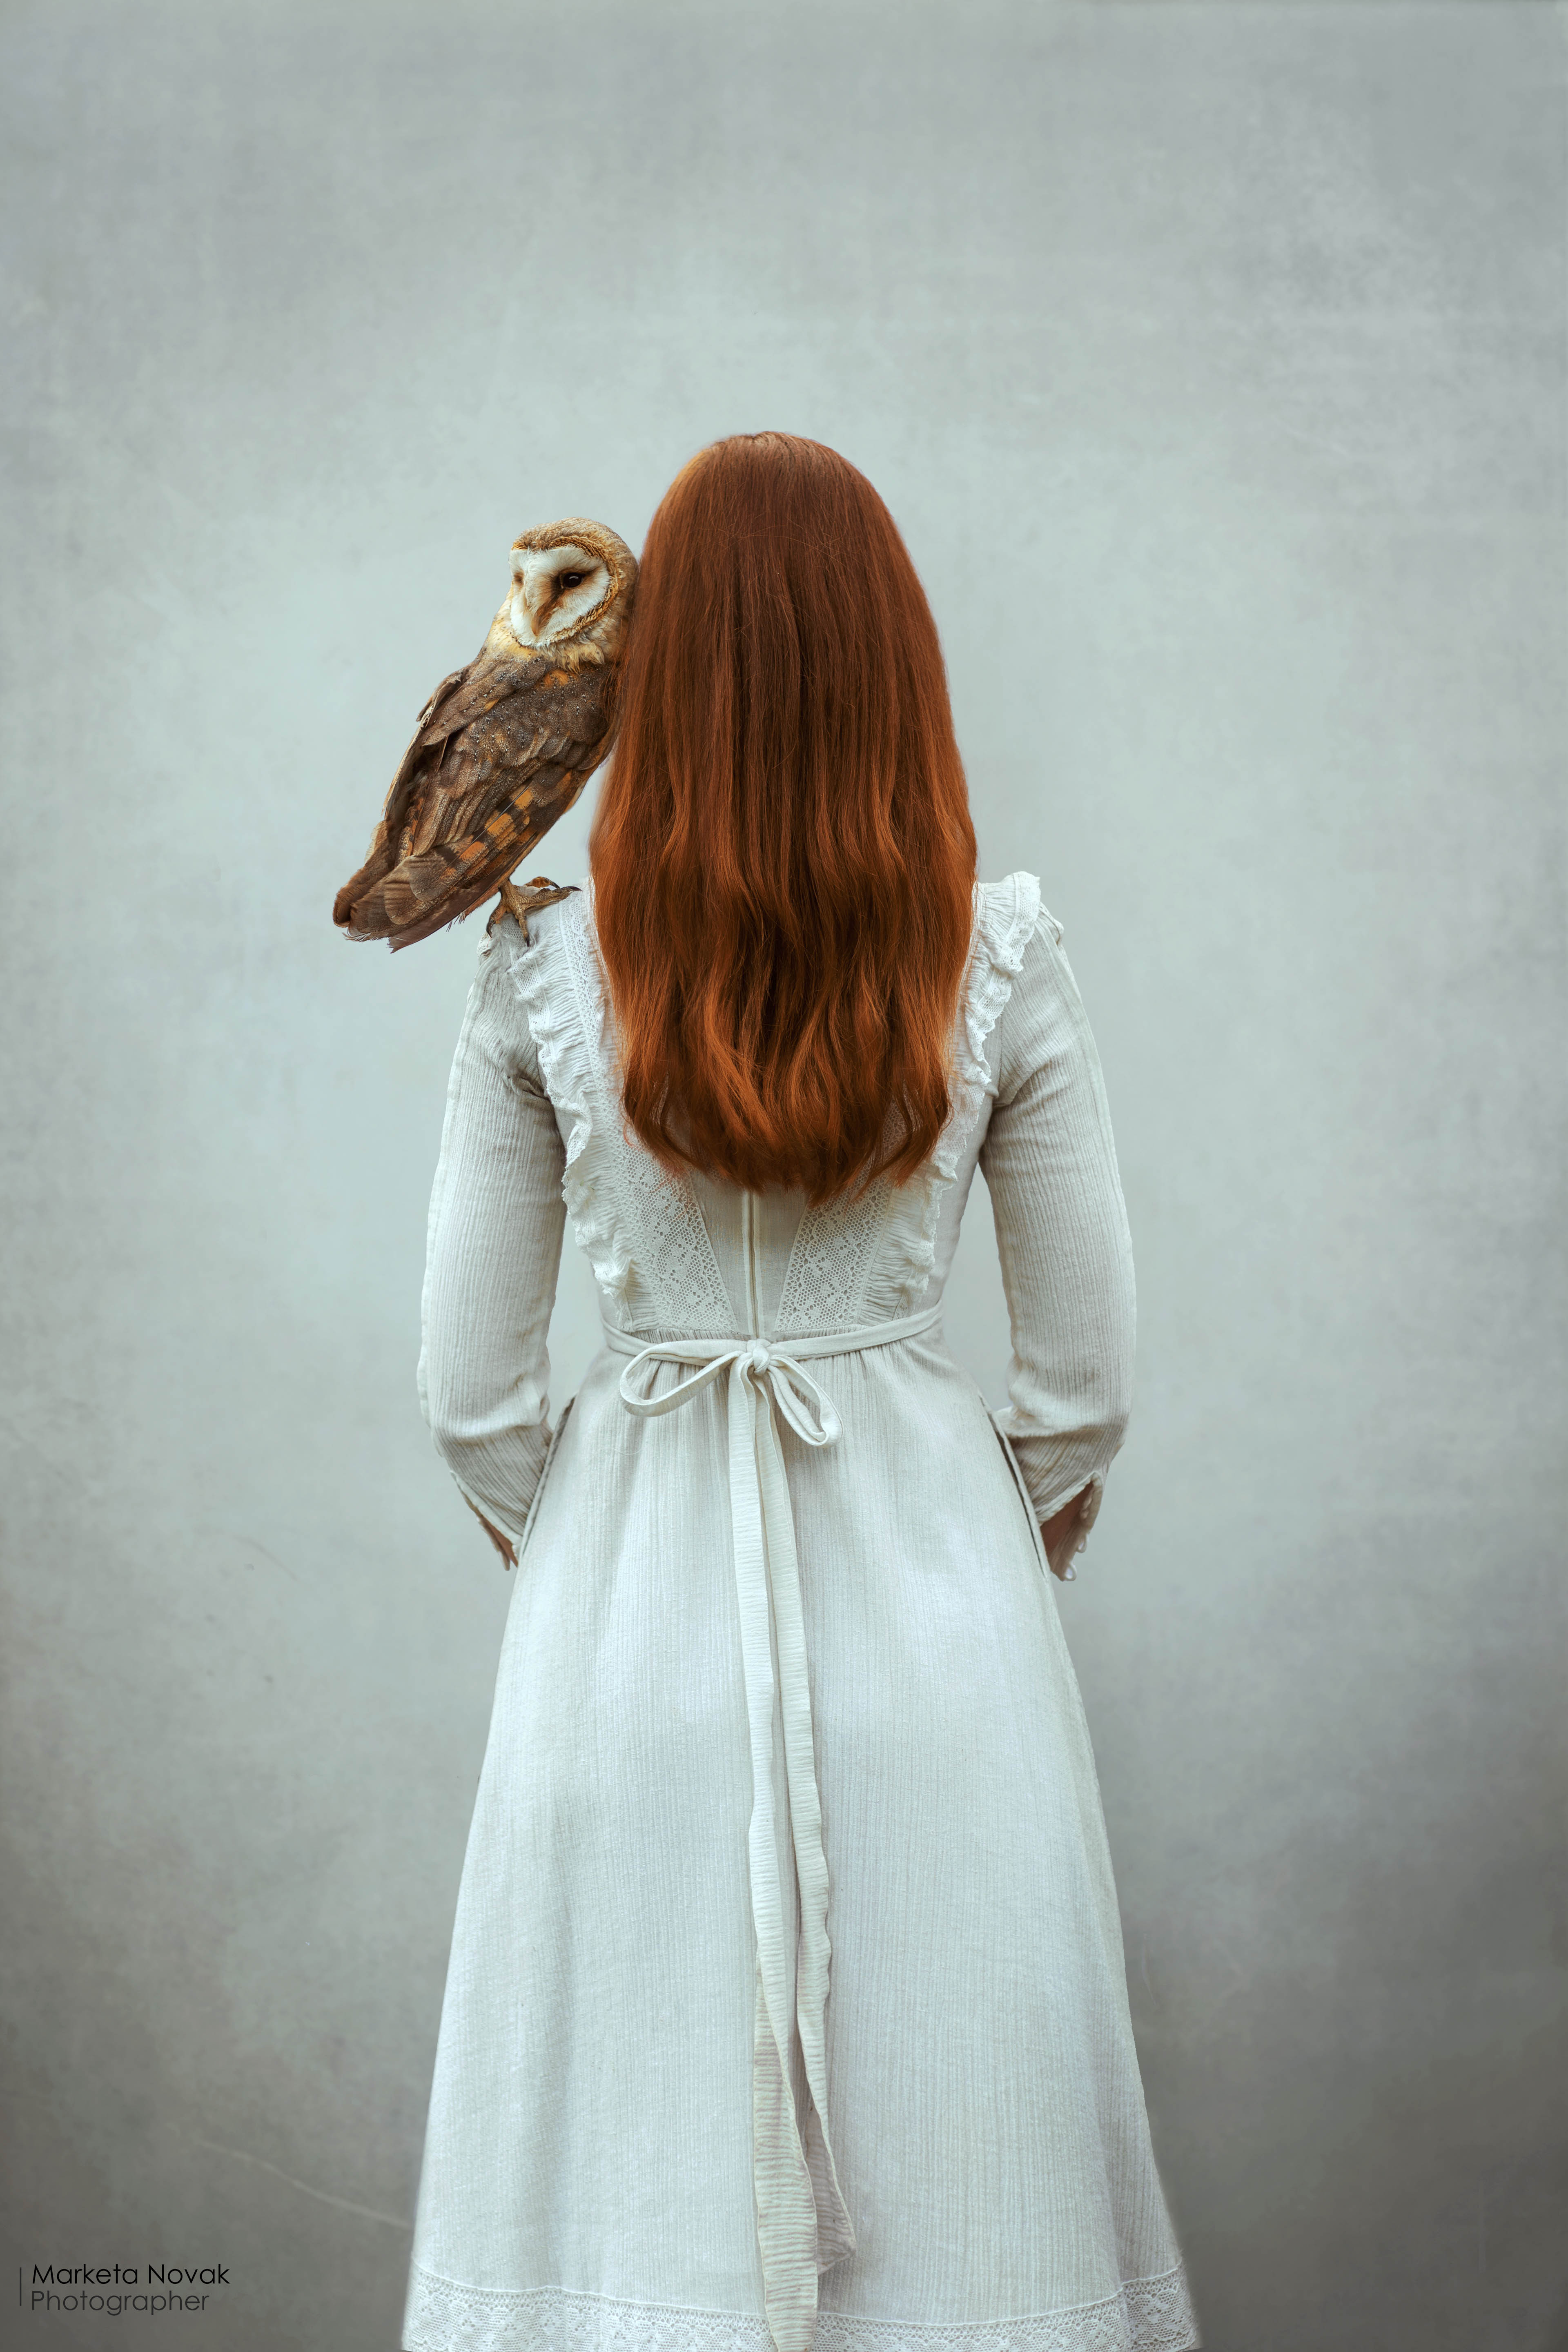 Inspired by Amy Judd